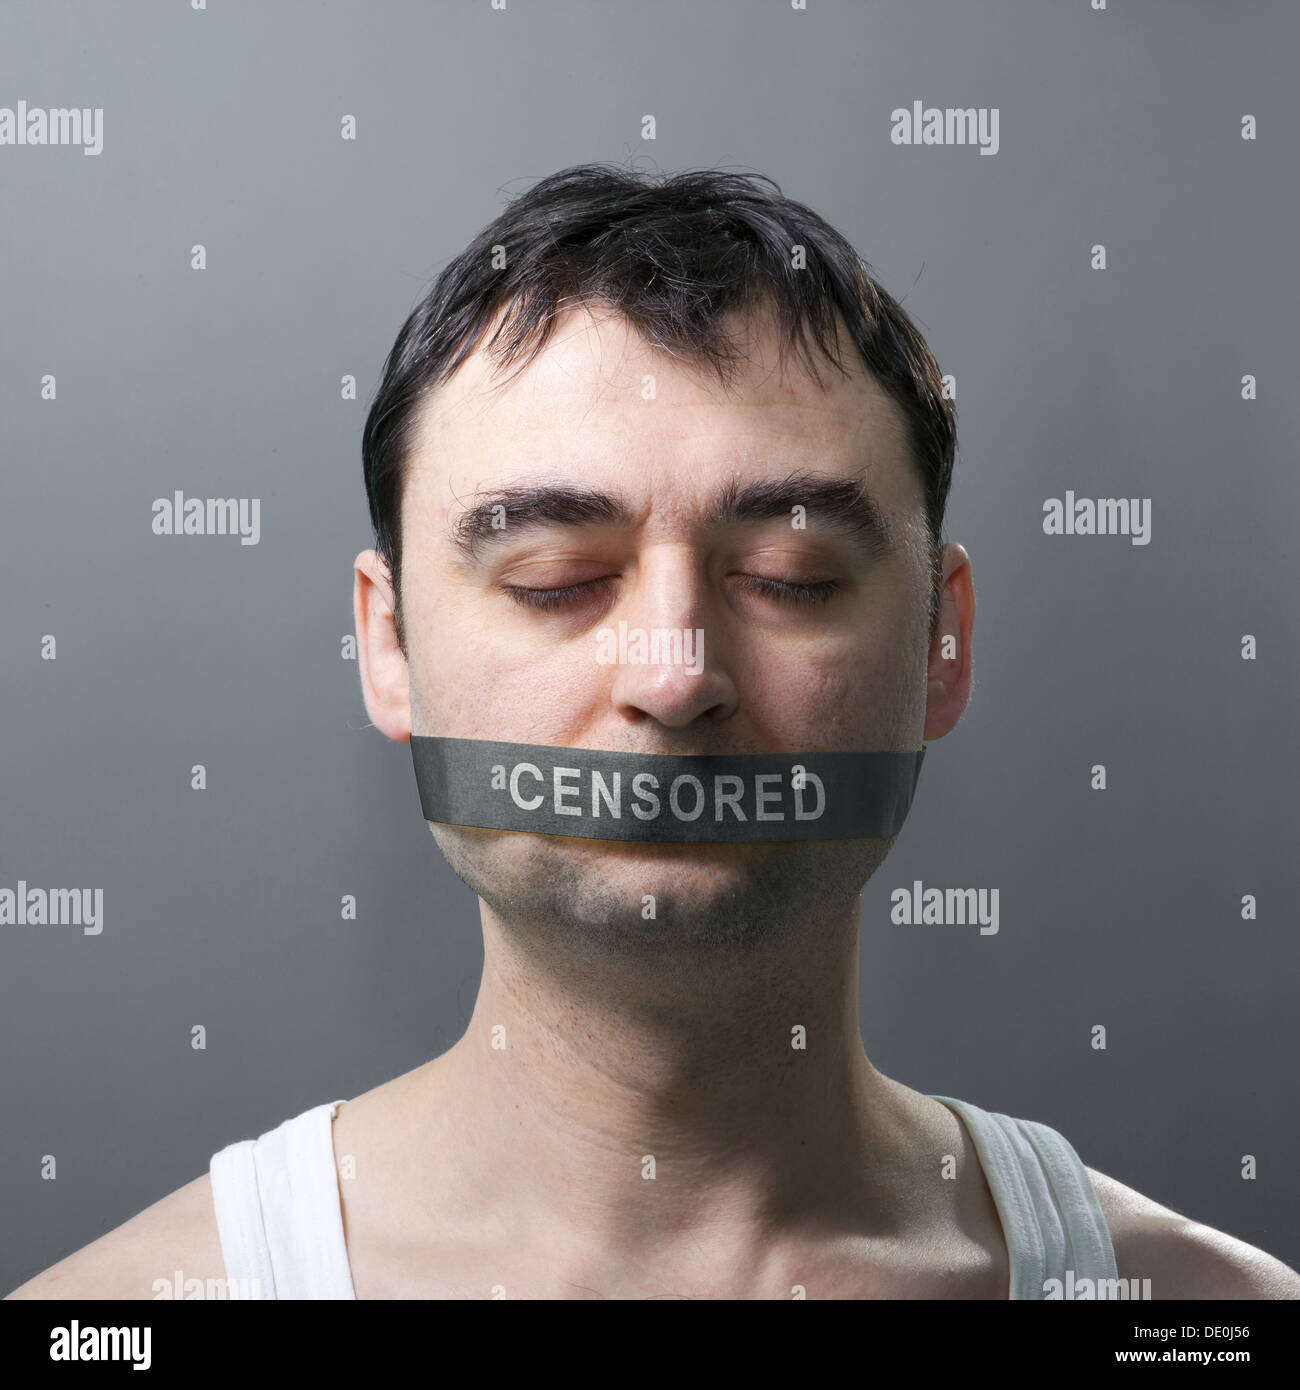 man's portrait with bandage on his face which represents censorship of statements - Stock Image